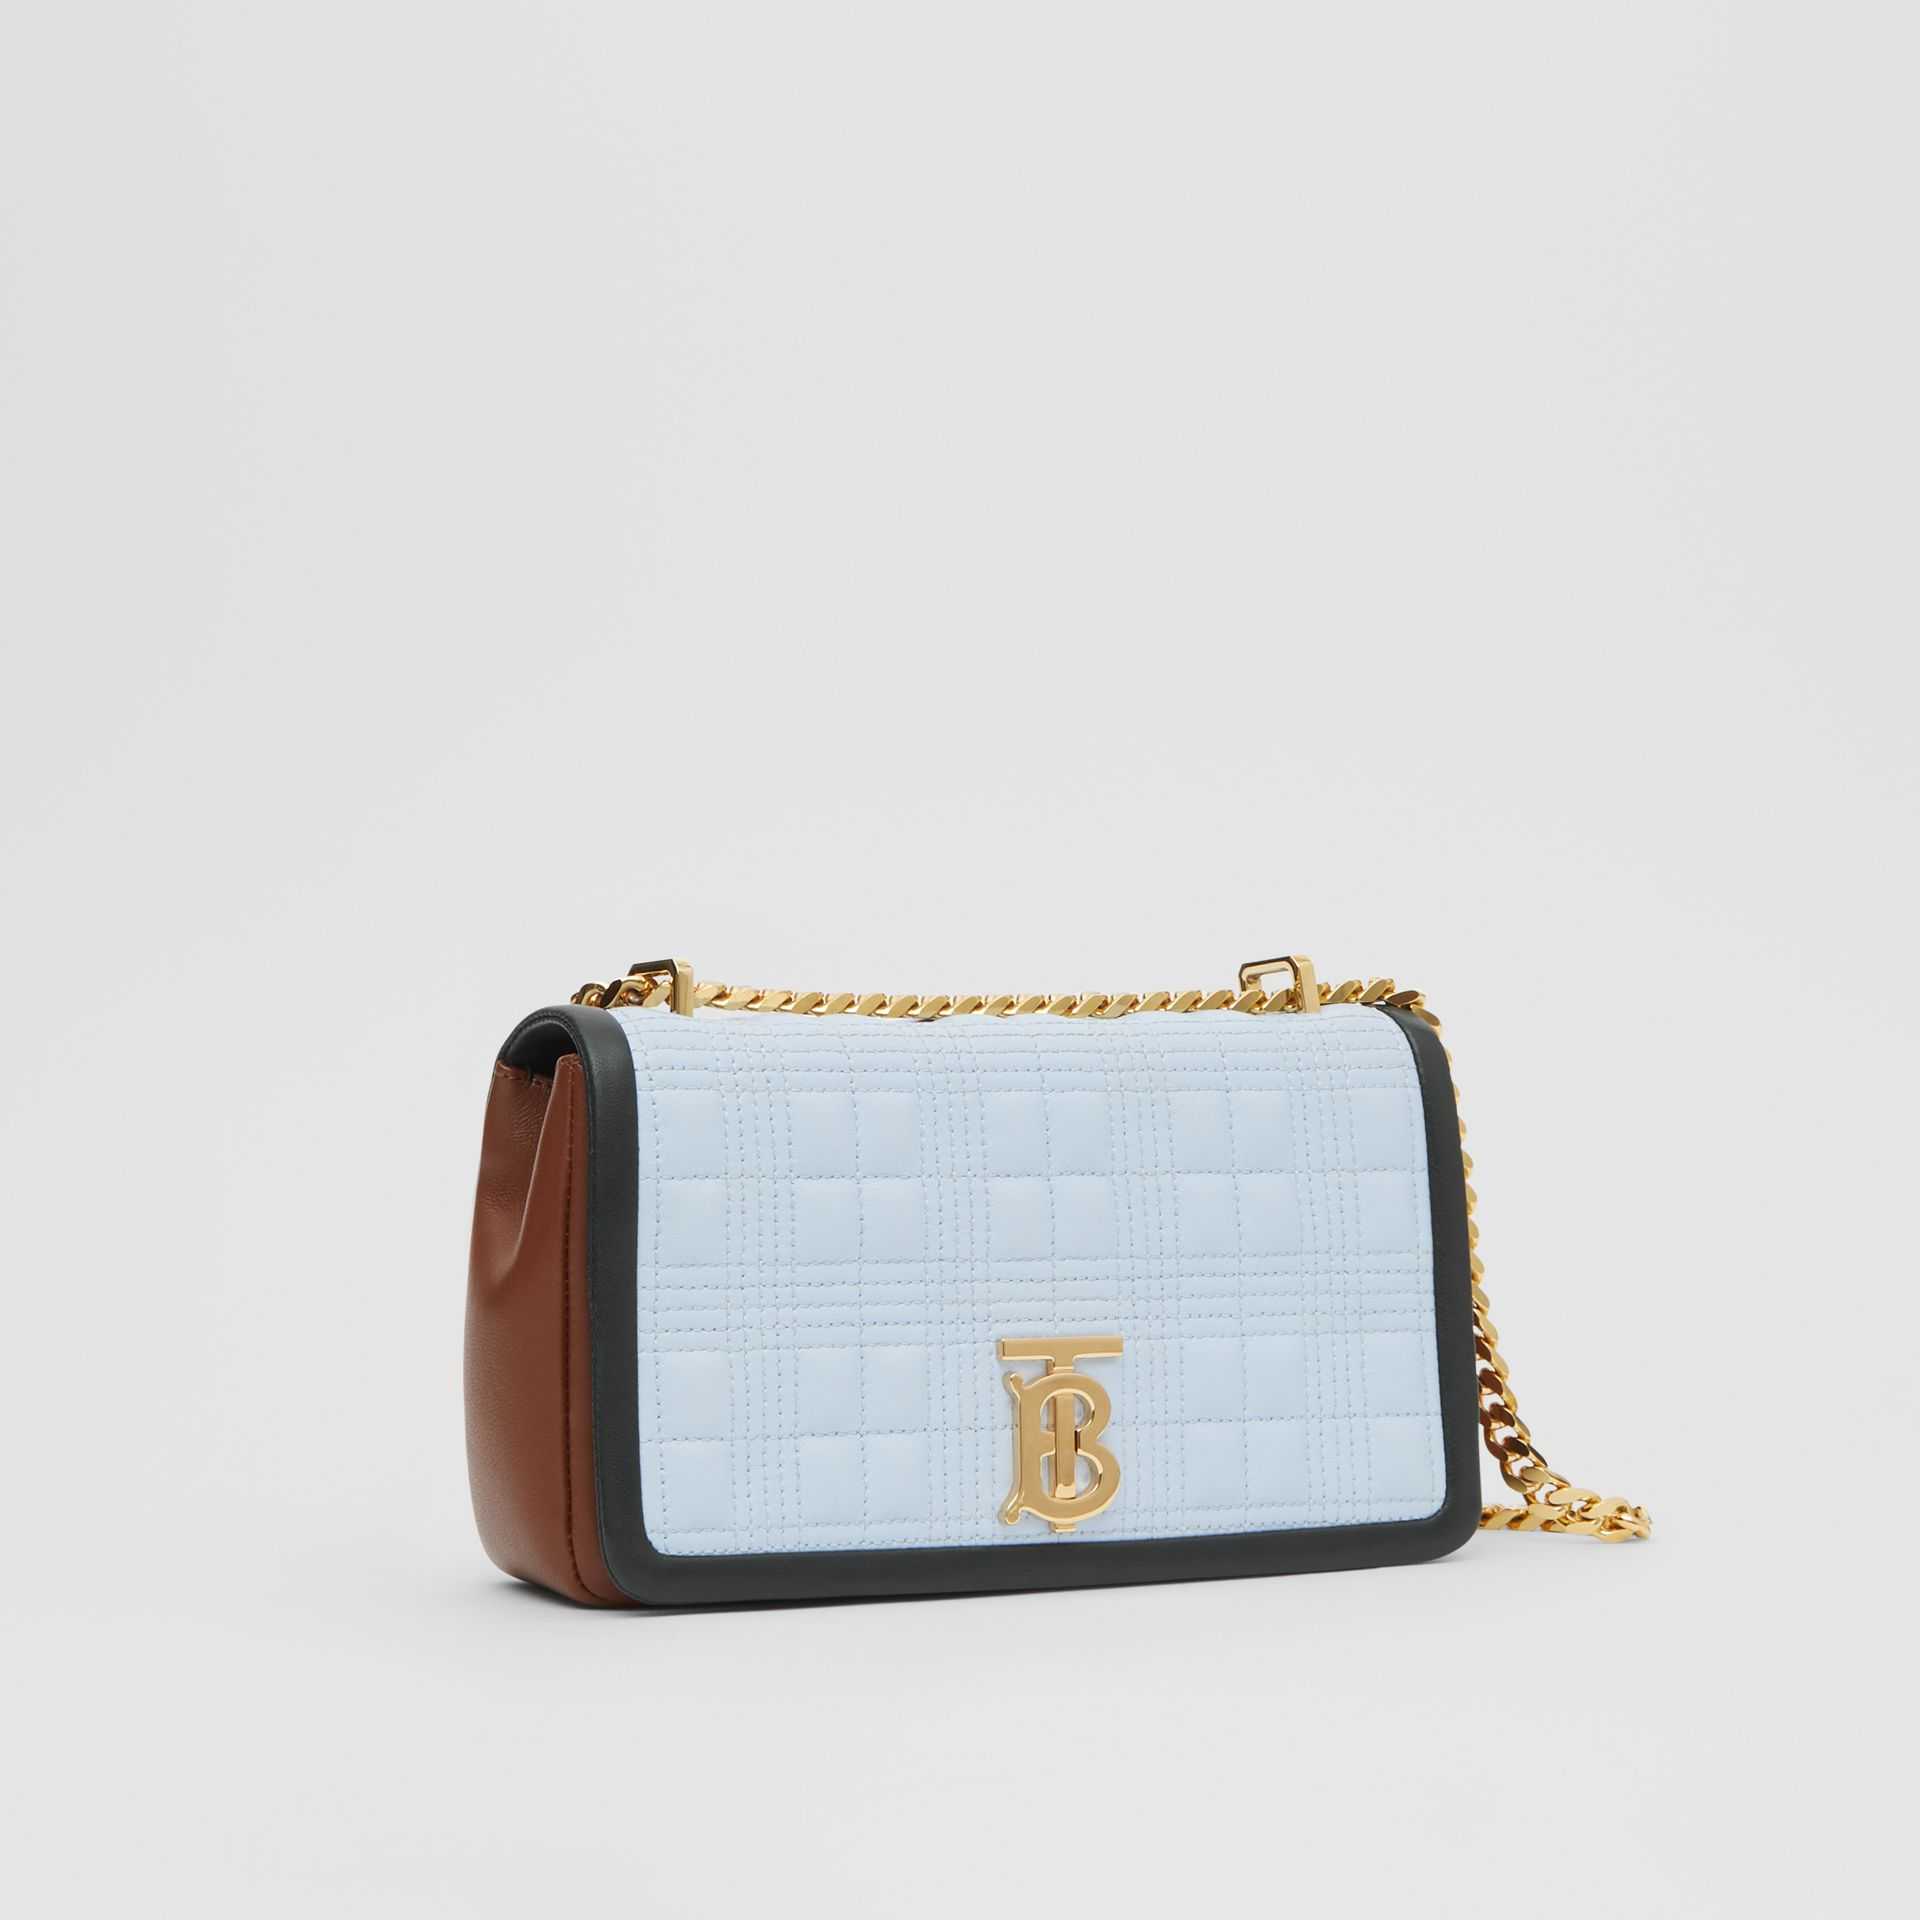 Small Quilted Tri-tone Lambskin Lola Bag in Pale Blue/dark Pine - Women | Burberry - gallery image 6